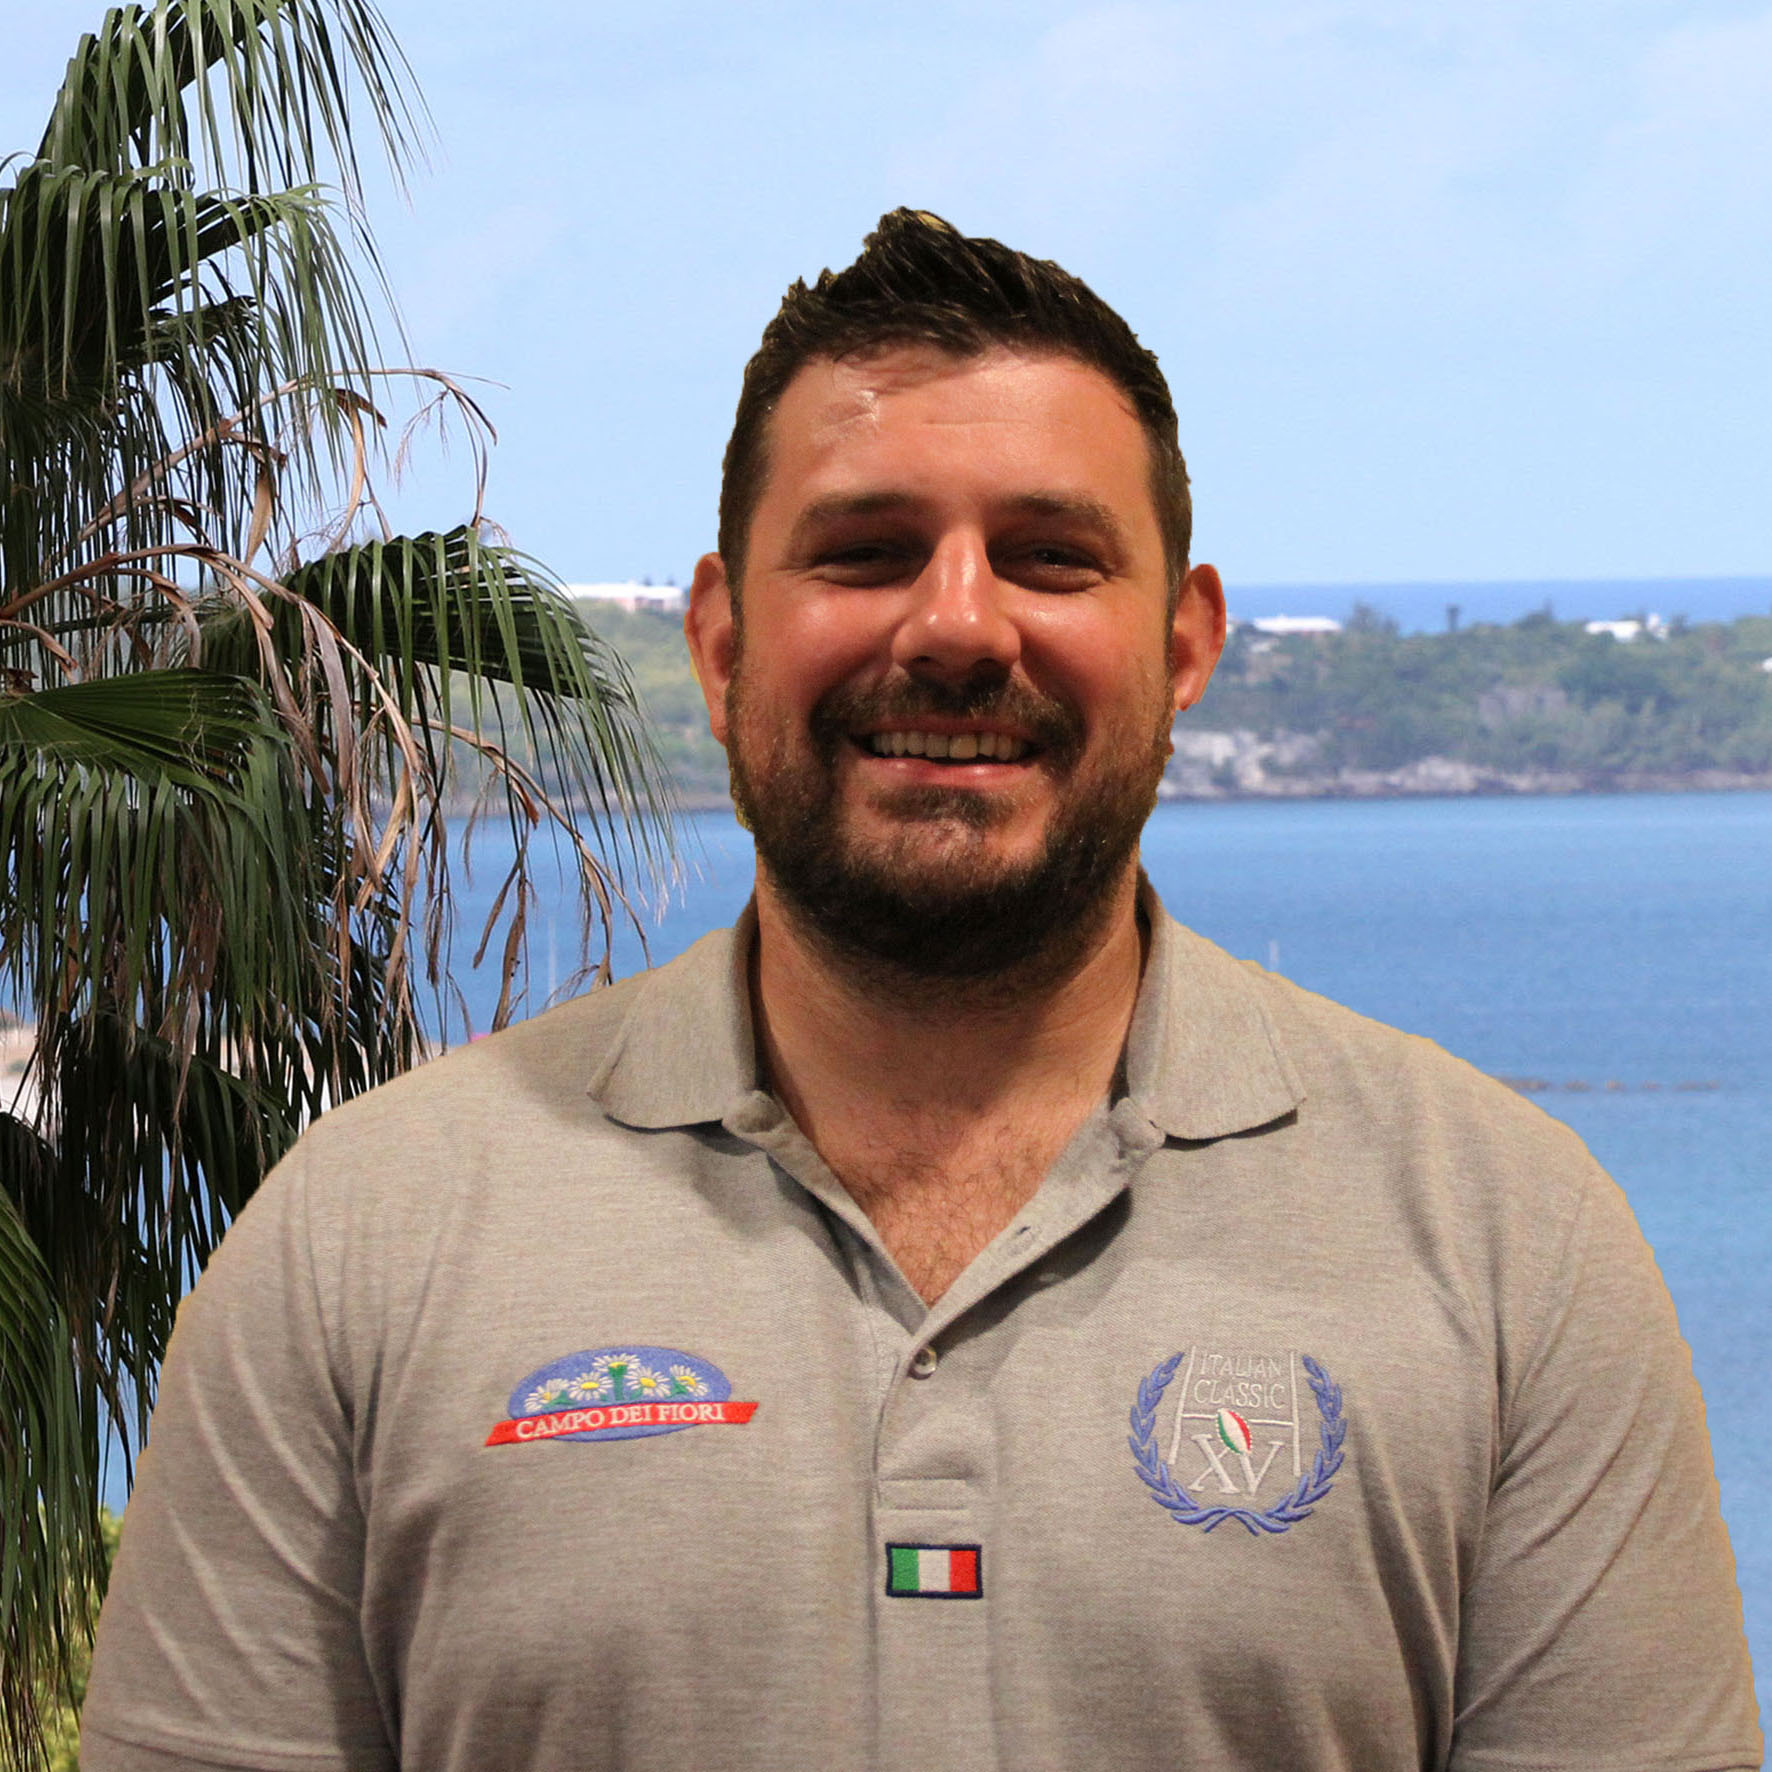 https://www.rugbyitalianclassicxv.com/wp-content/uploads/2019/04/WorldClassic2018_Bermuda_20181104_00_Glen_ph_Turchetto.jpg